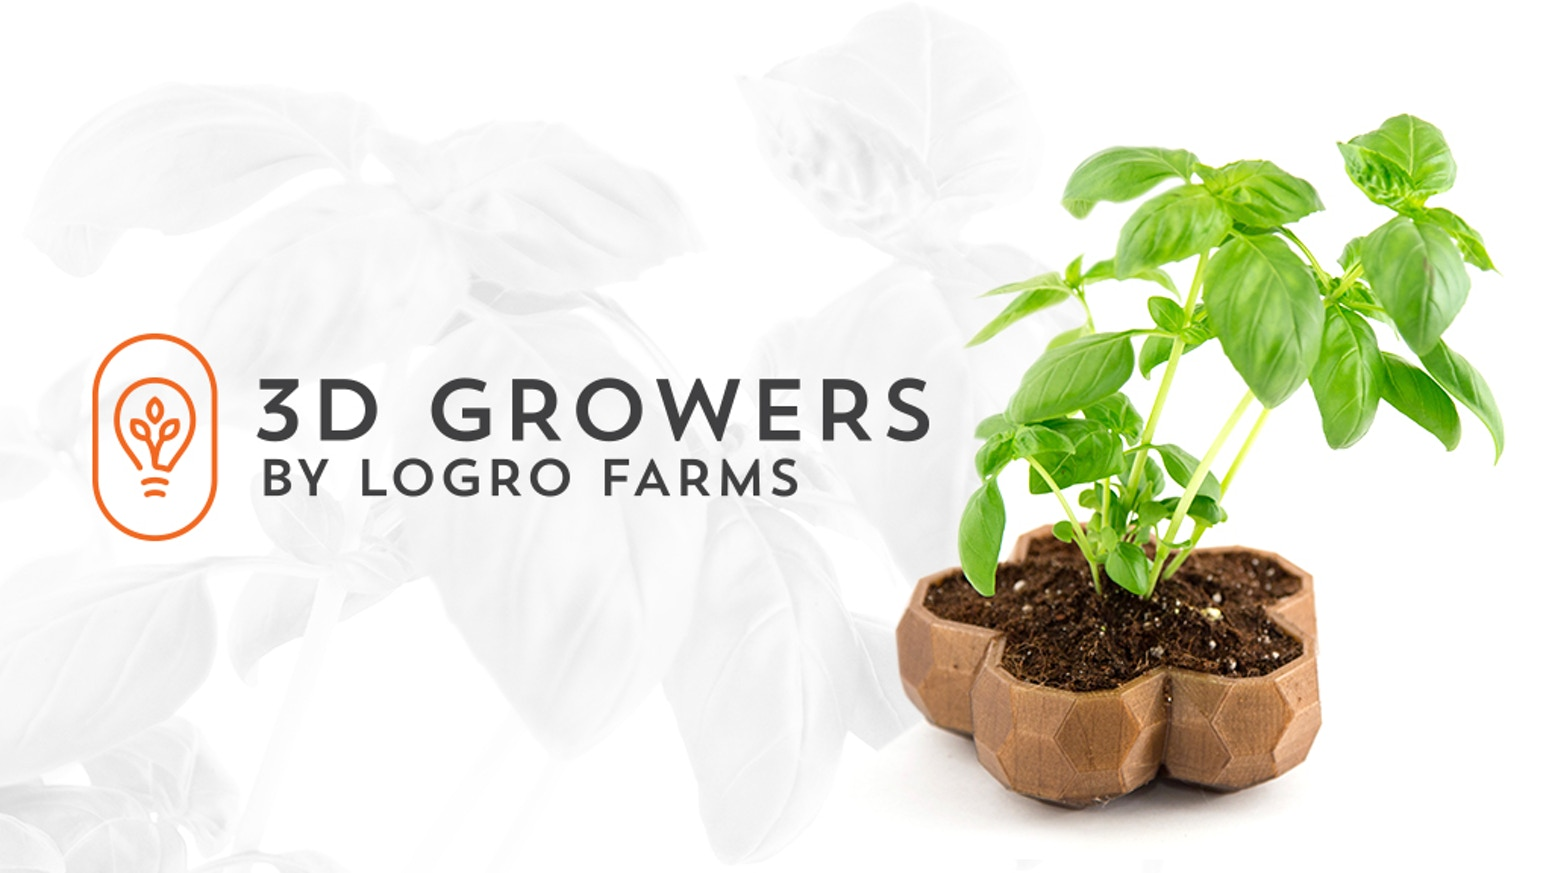 3D Growers | Custom 3D Printed Planters by Logro Farms — Kickstarter